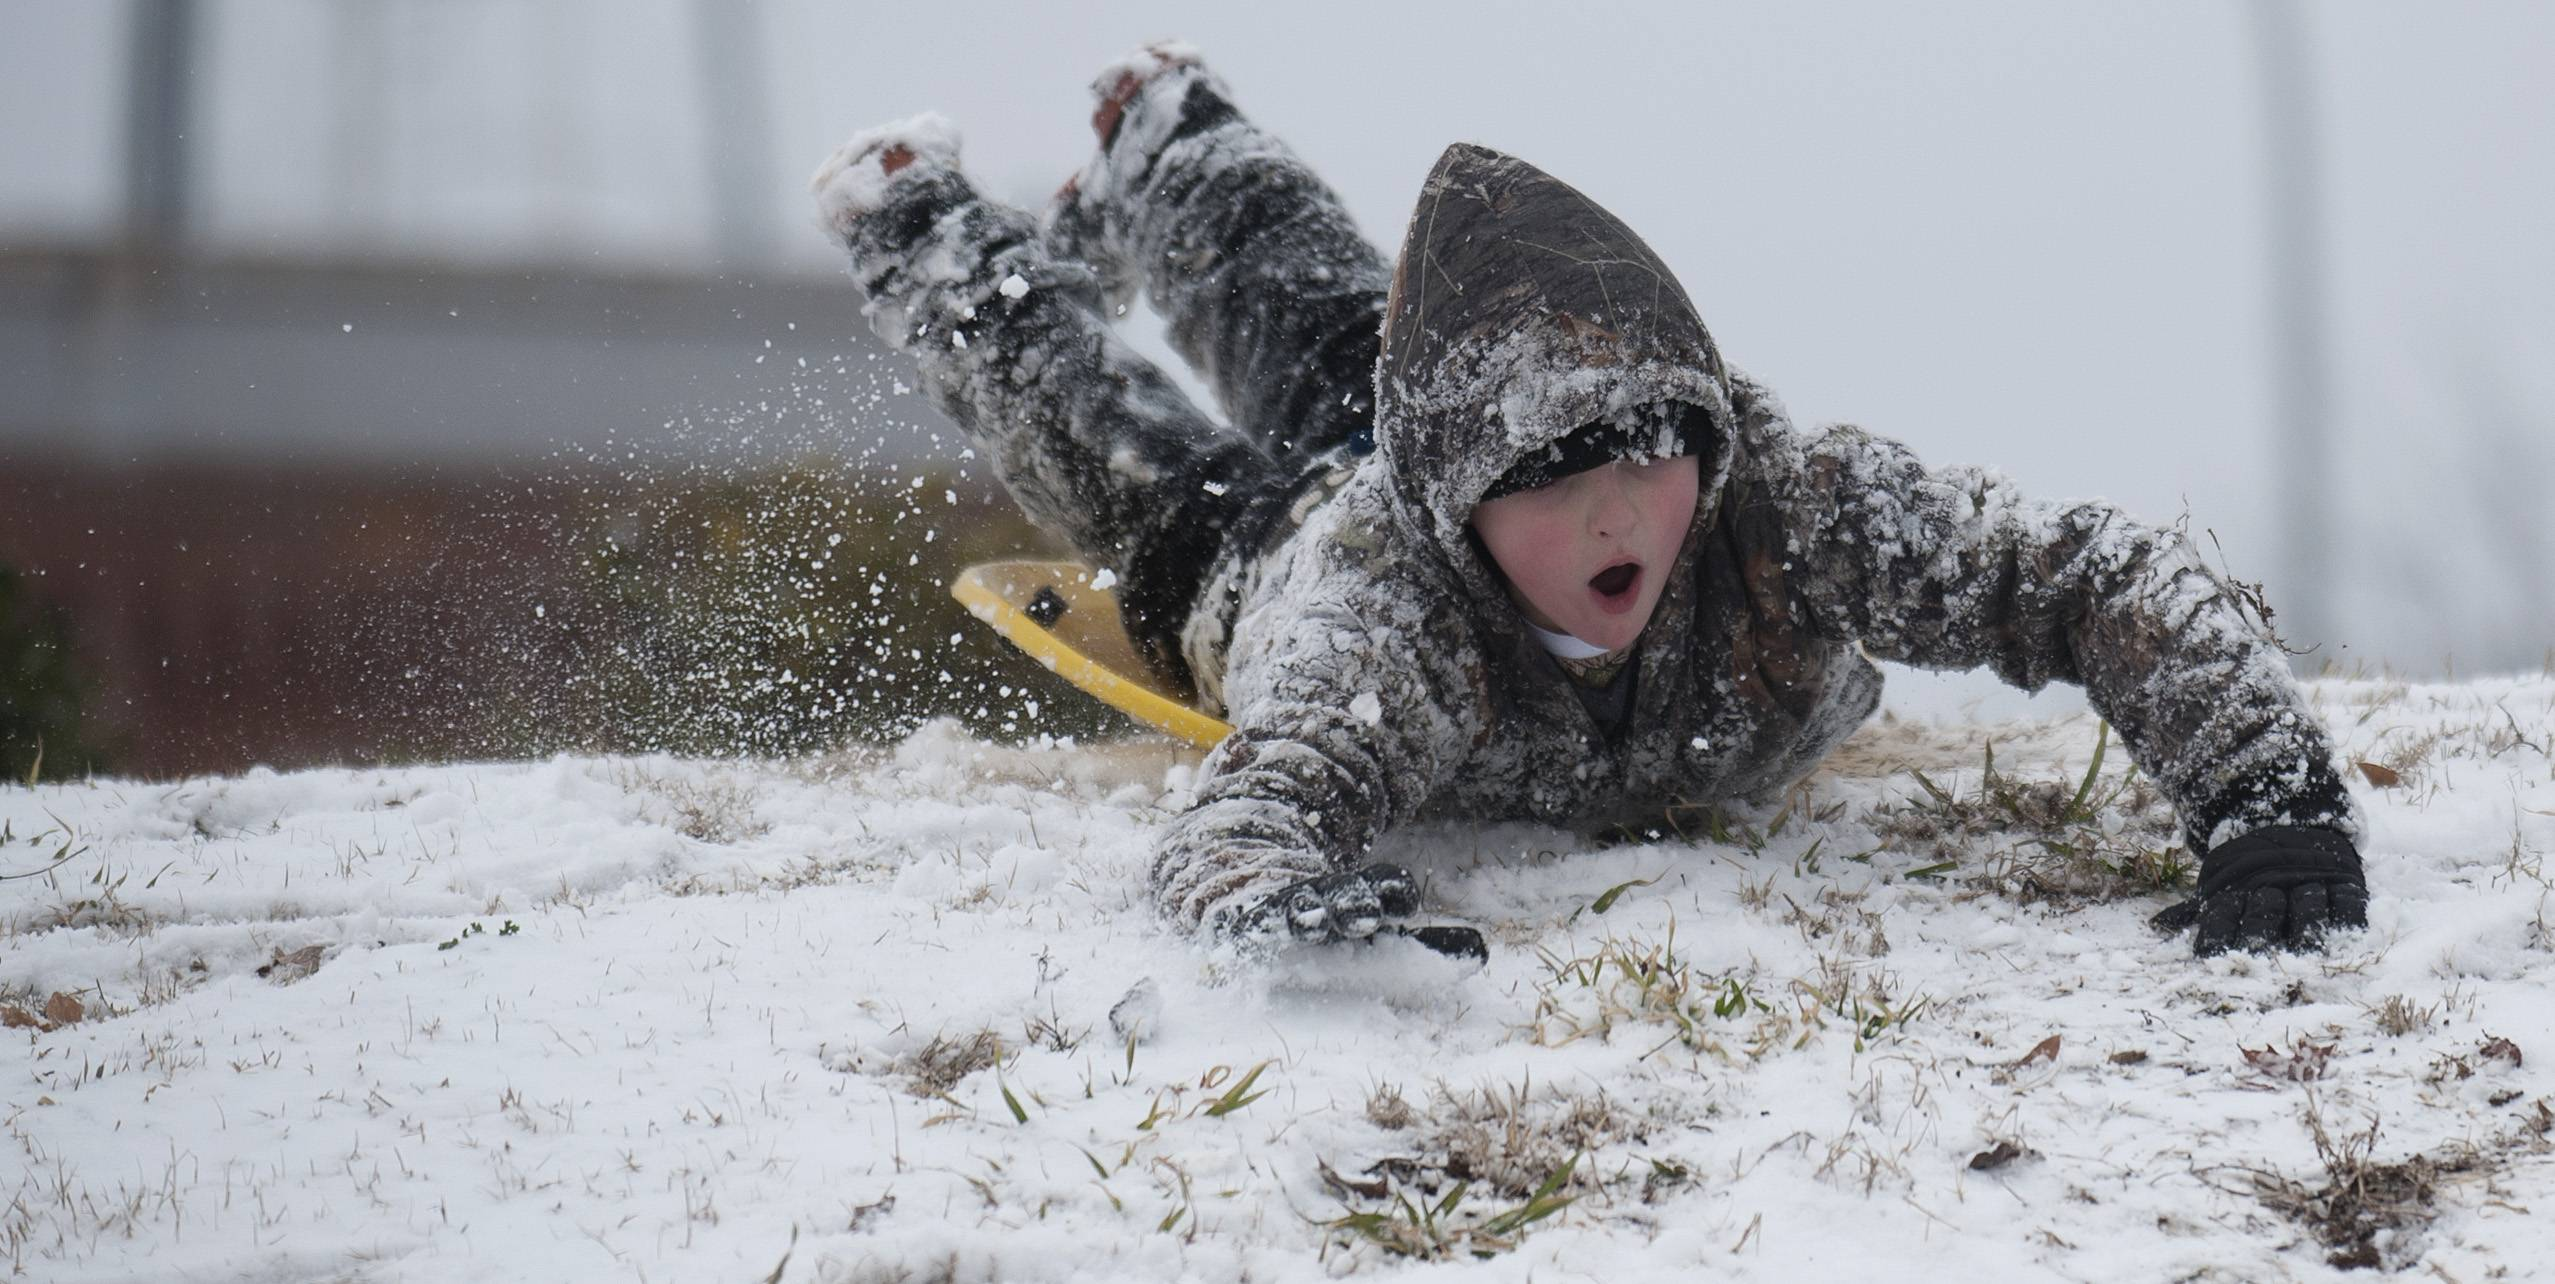 Jackson Sherrill slides down a hill at Founder Park in Decatur, Ala., on Tuesday, Feb. 11, 2014. A winter storm dropped several inches of snow on North Alabama overnight and more is expected.